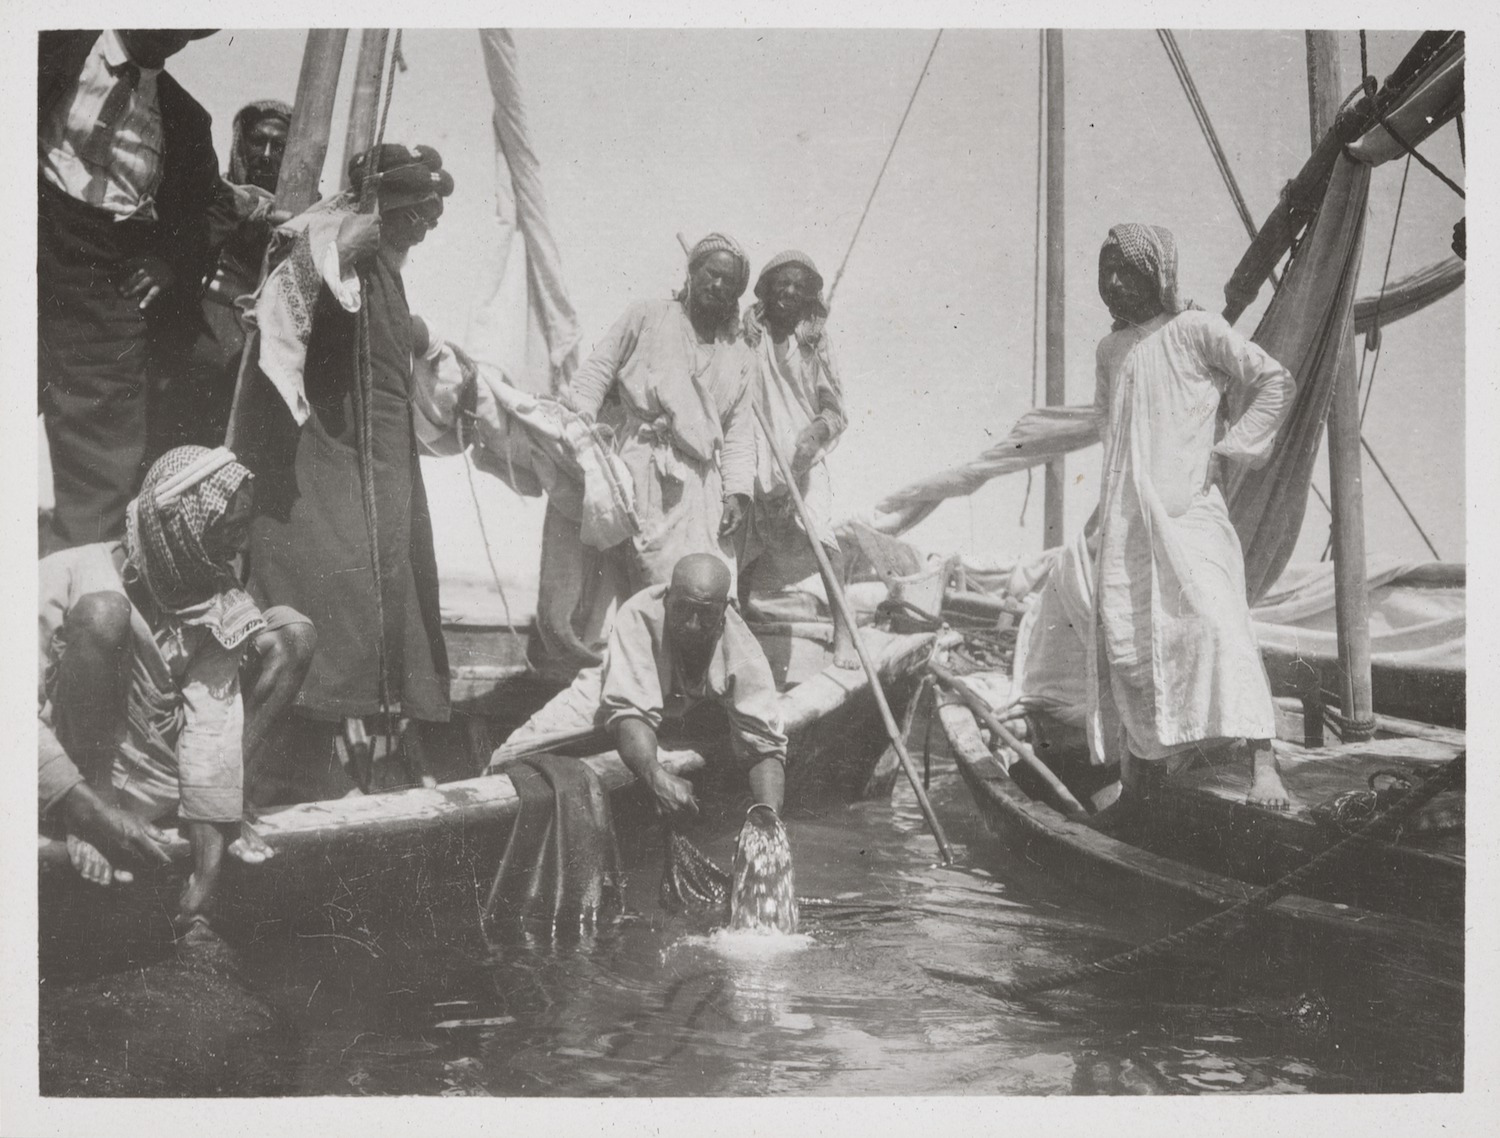 Jacques Cartier documents the techniques of Middle Eastern pearl divers